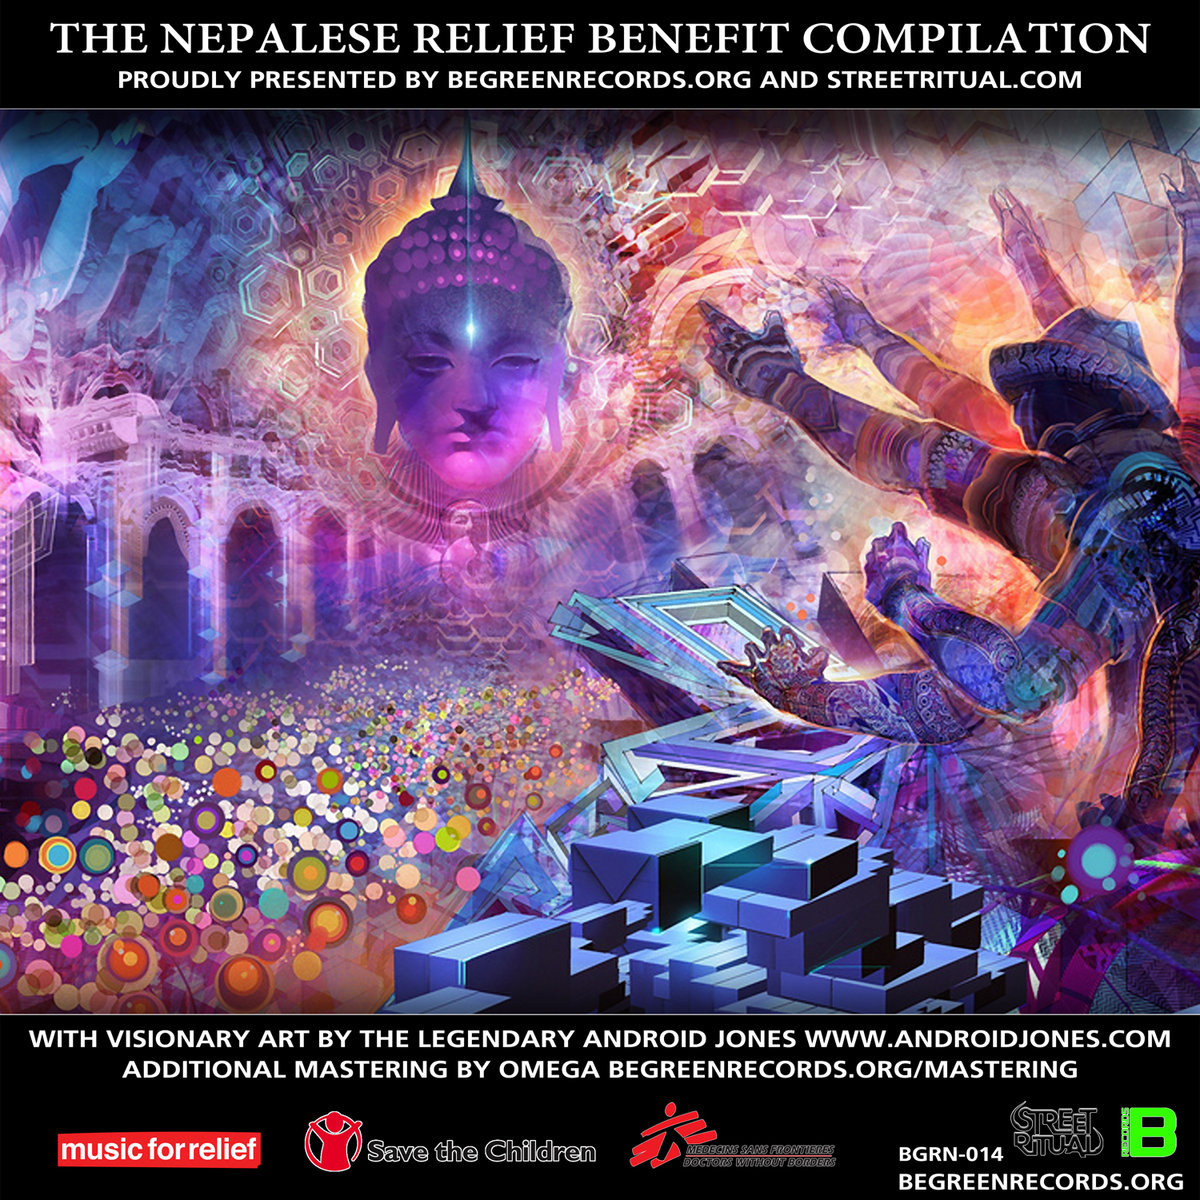 Unfold Music - Days Of Our Lives @ 'Various Artists - The Nepalese Relief Benefit Compilation' album (bass, electronic)